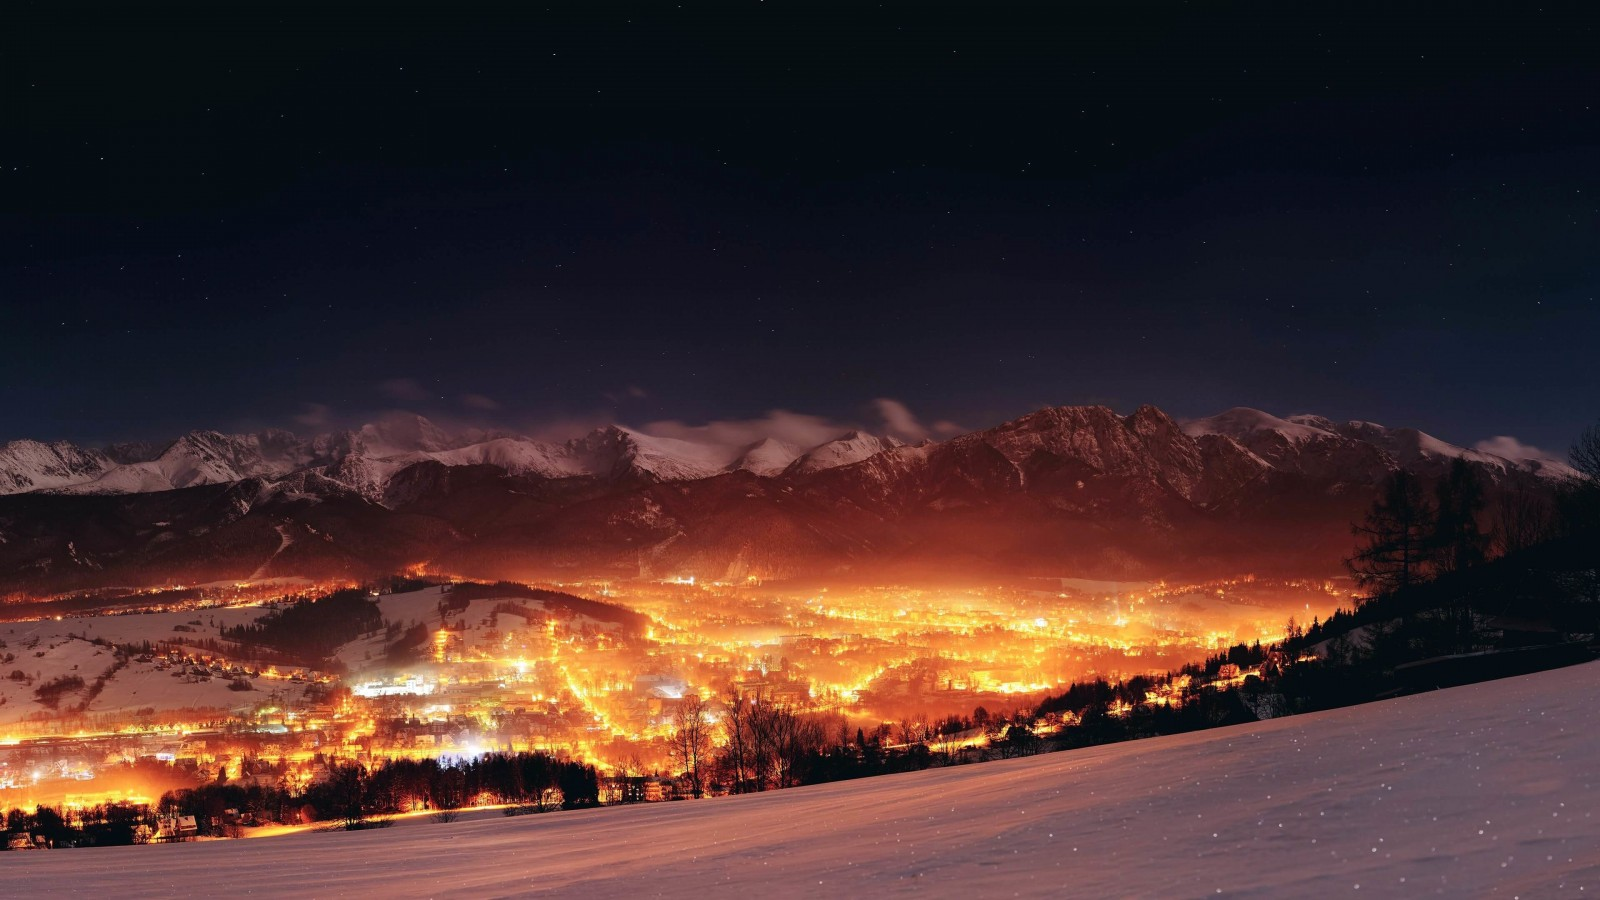 Zakopane City At Night - Poland Wallpaper for Desktop 1600x900